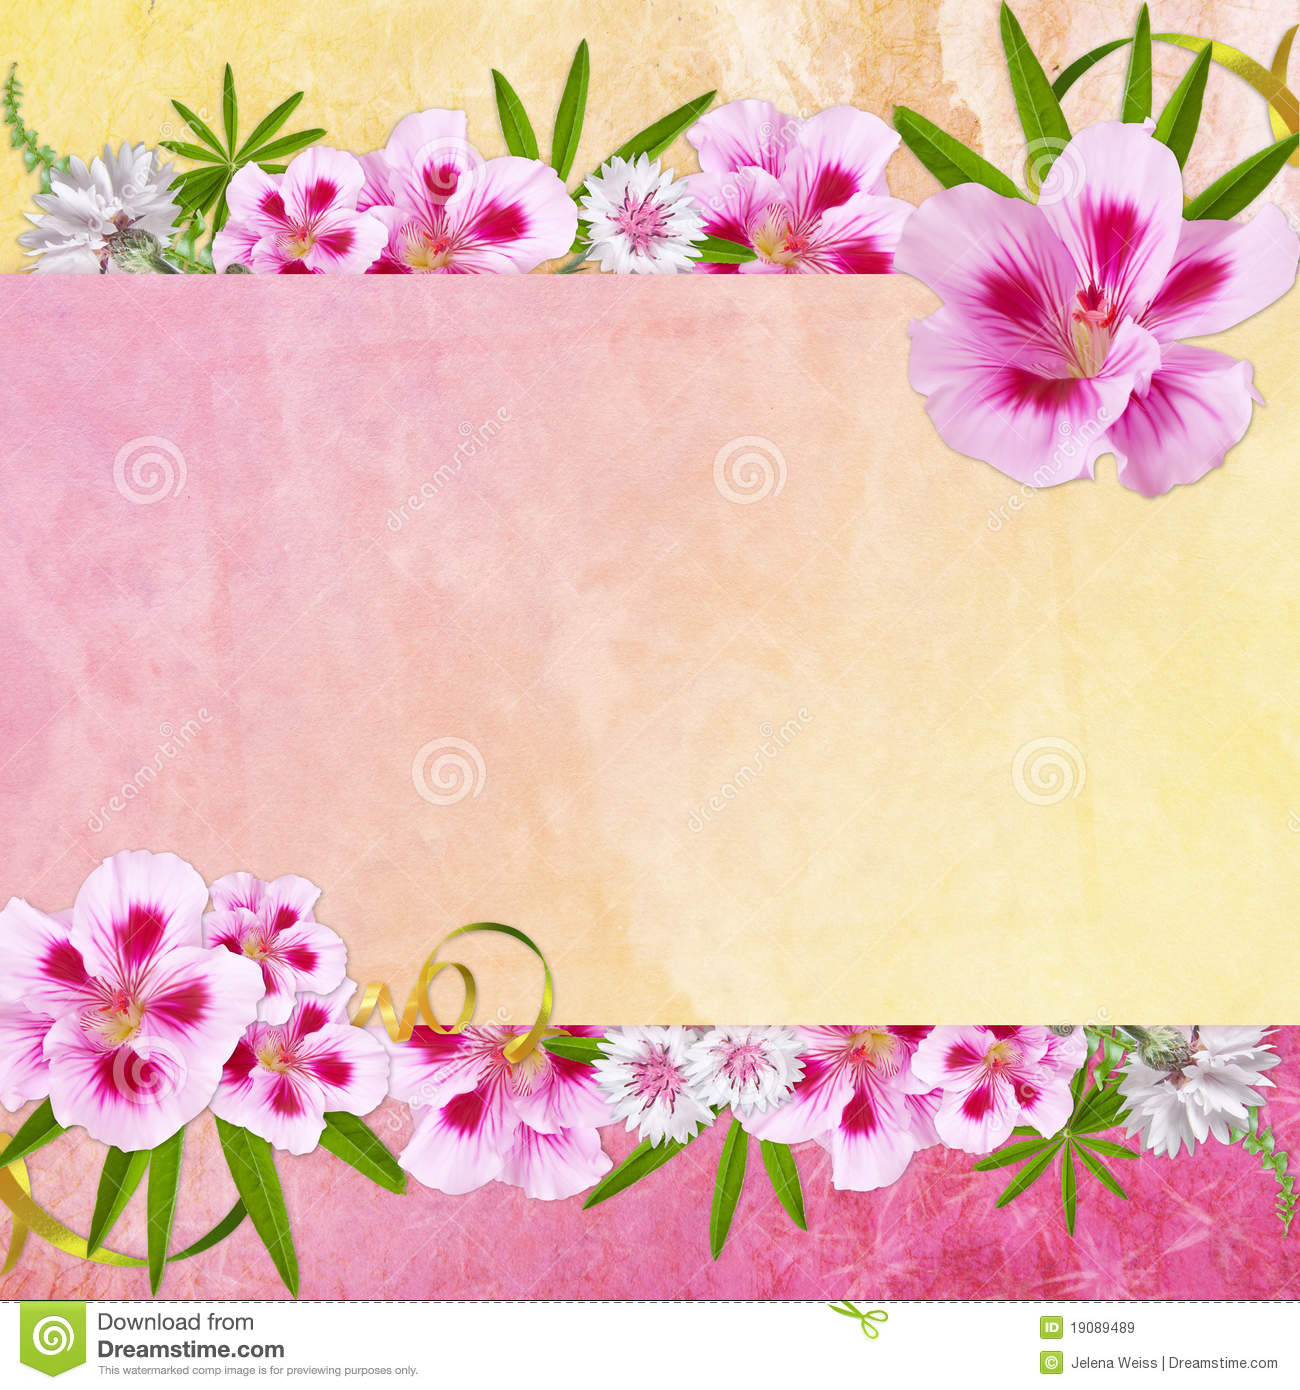 Background For Congratulation Card Royalty Free Stock Images - Image: 19089489